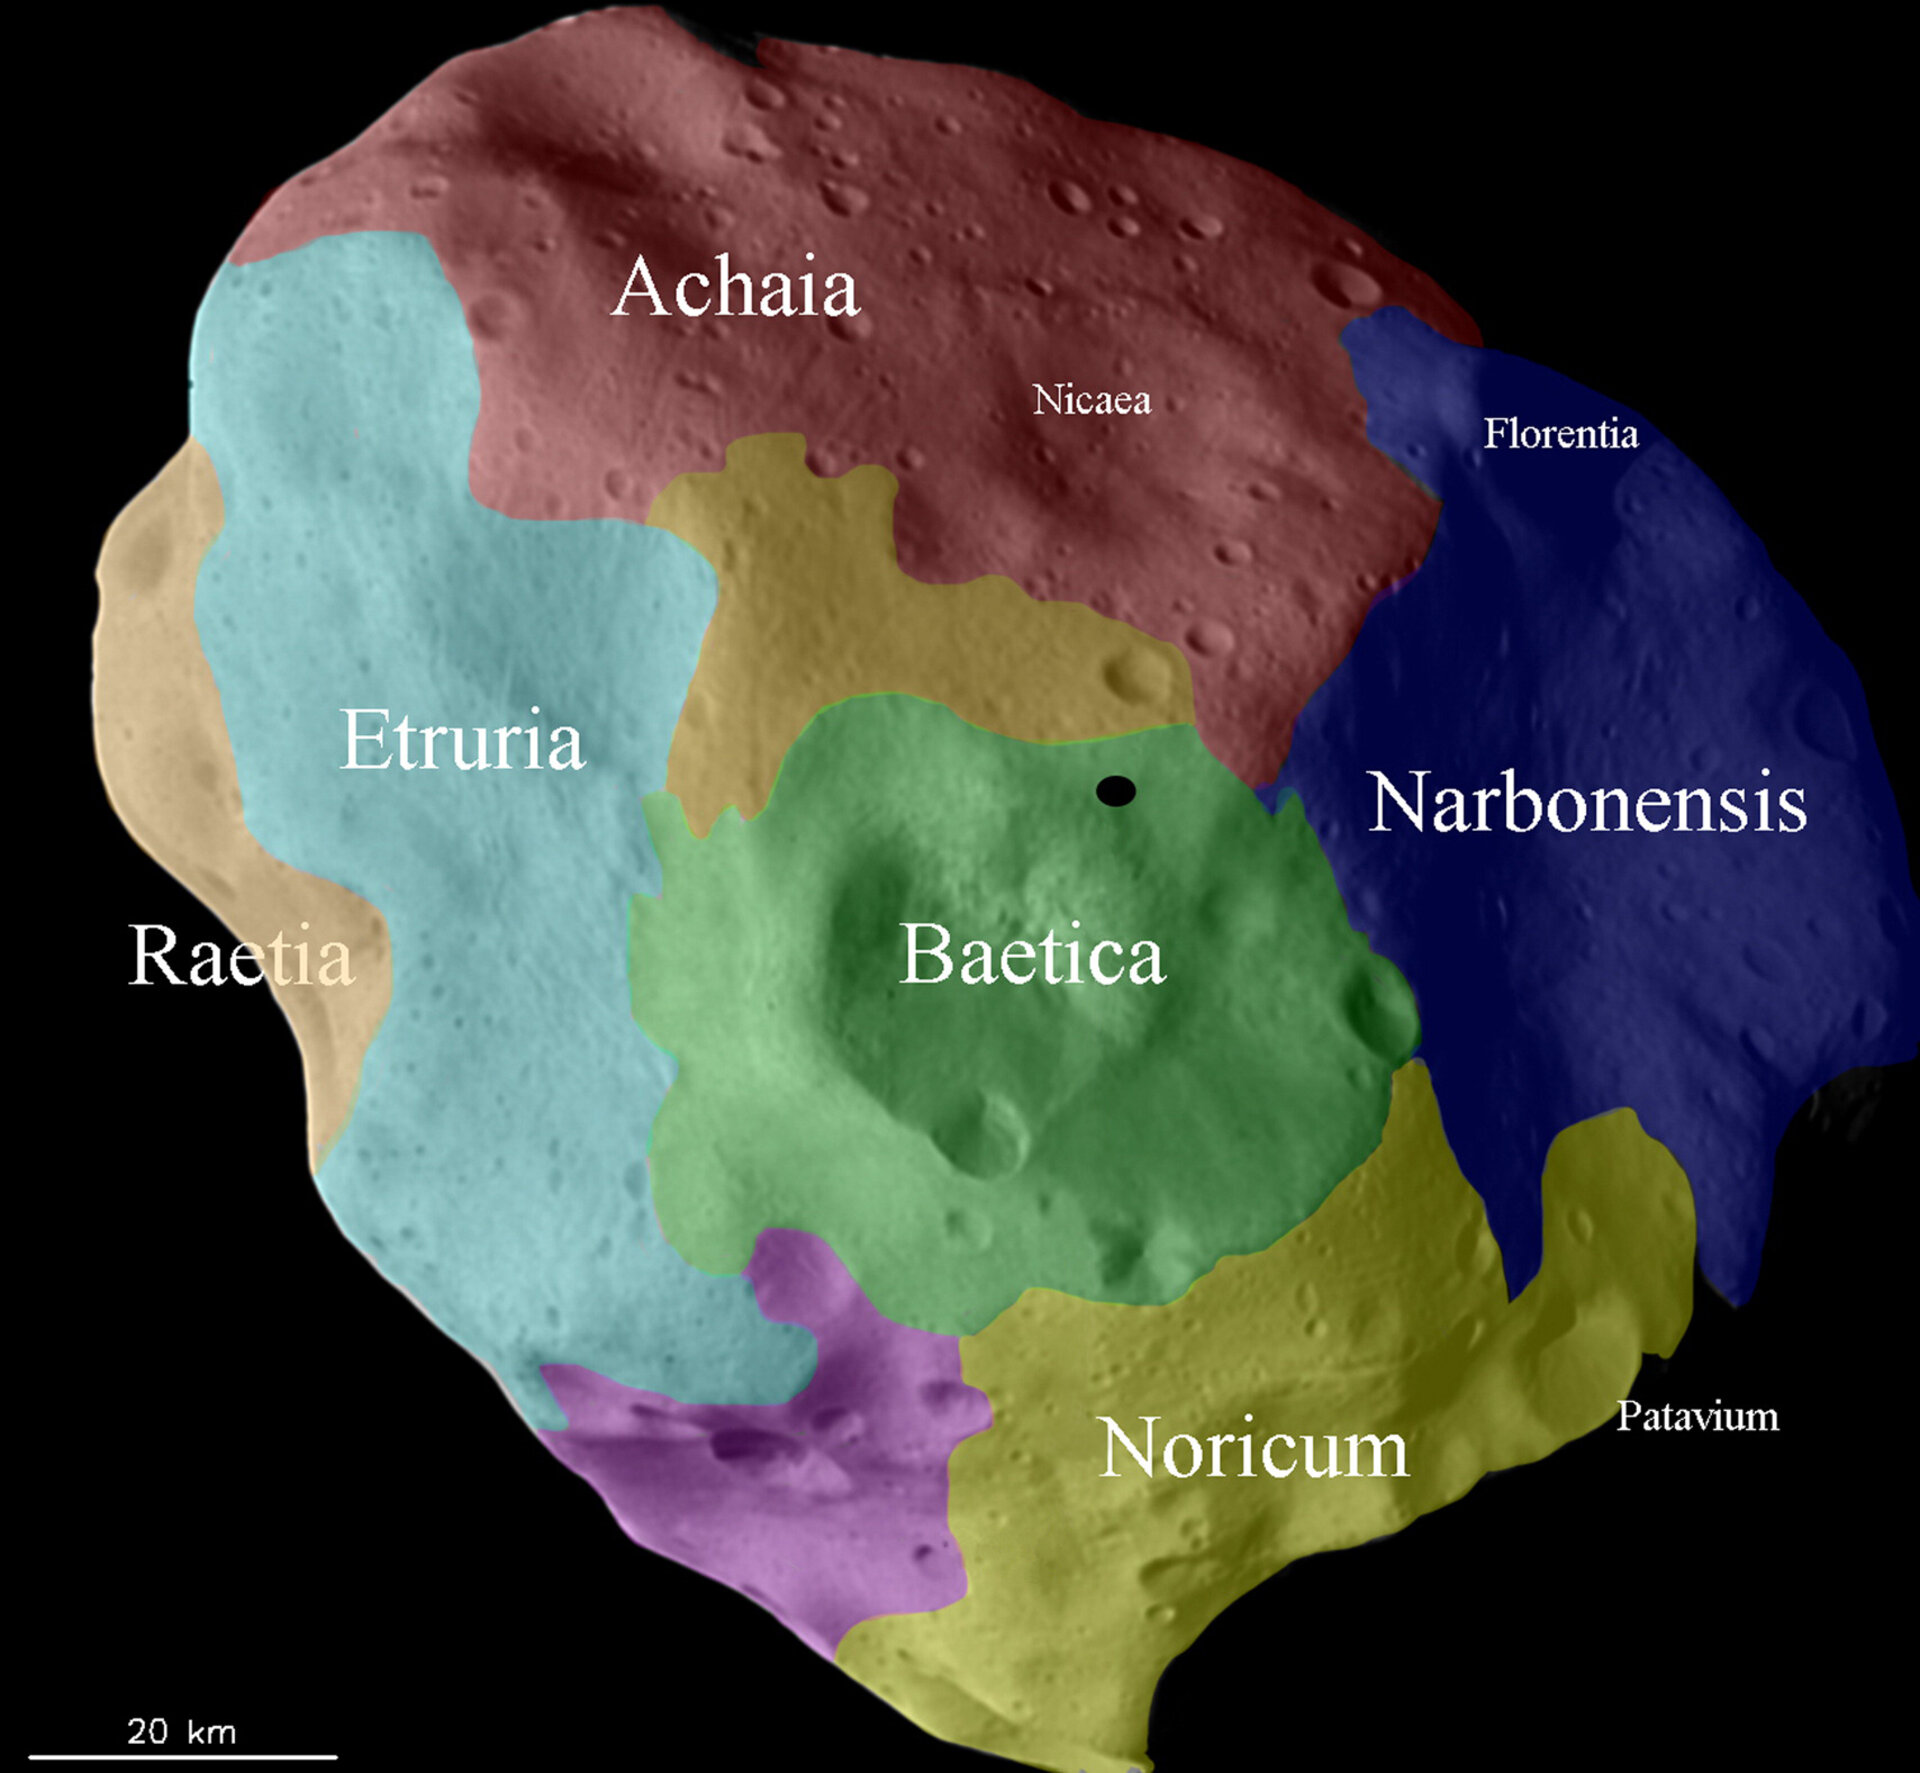 The history of different regions on Lutetia's surface